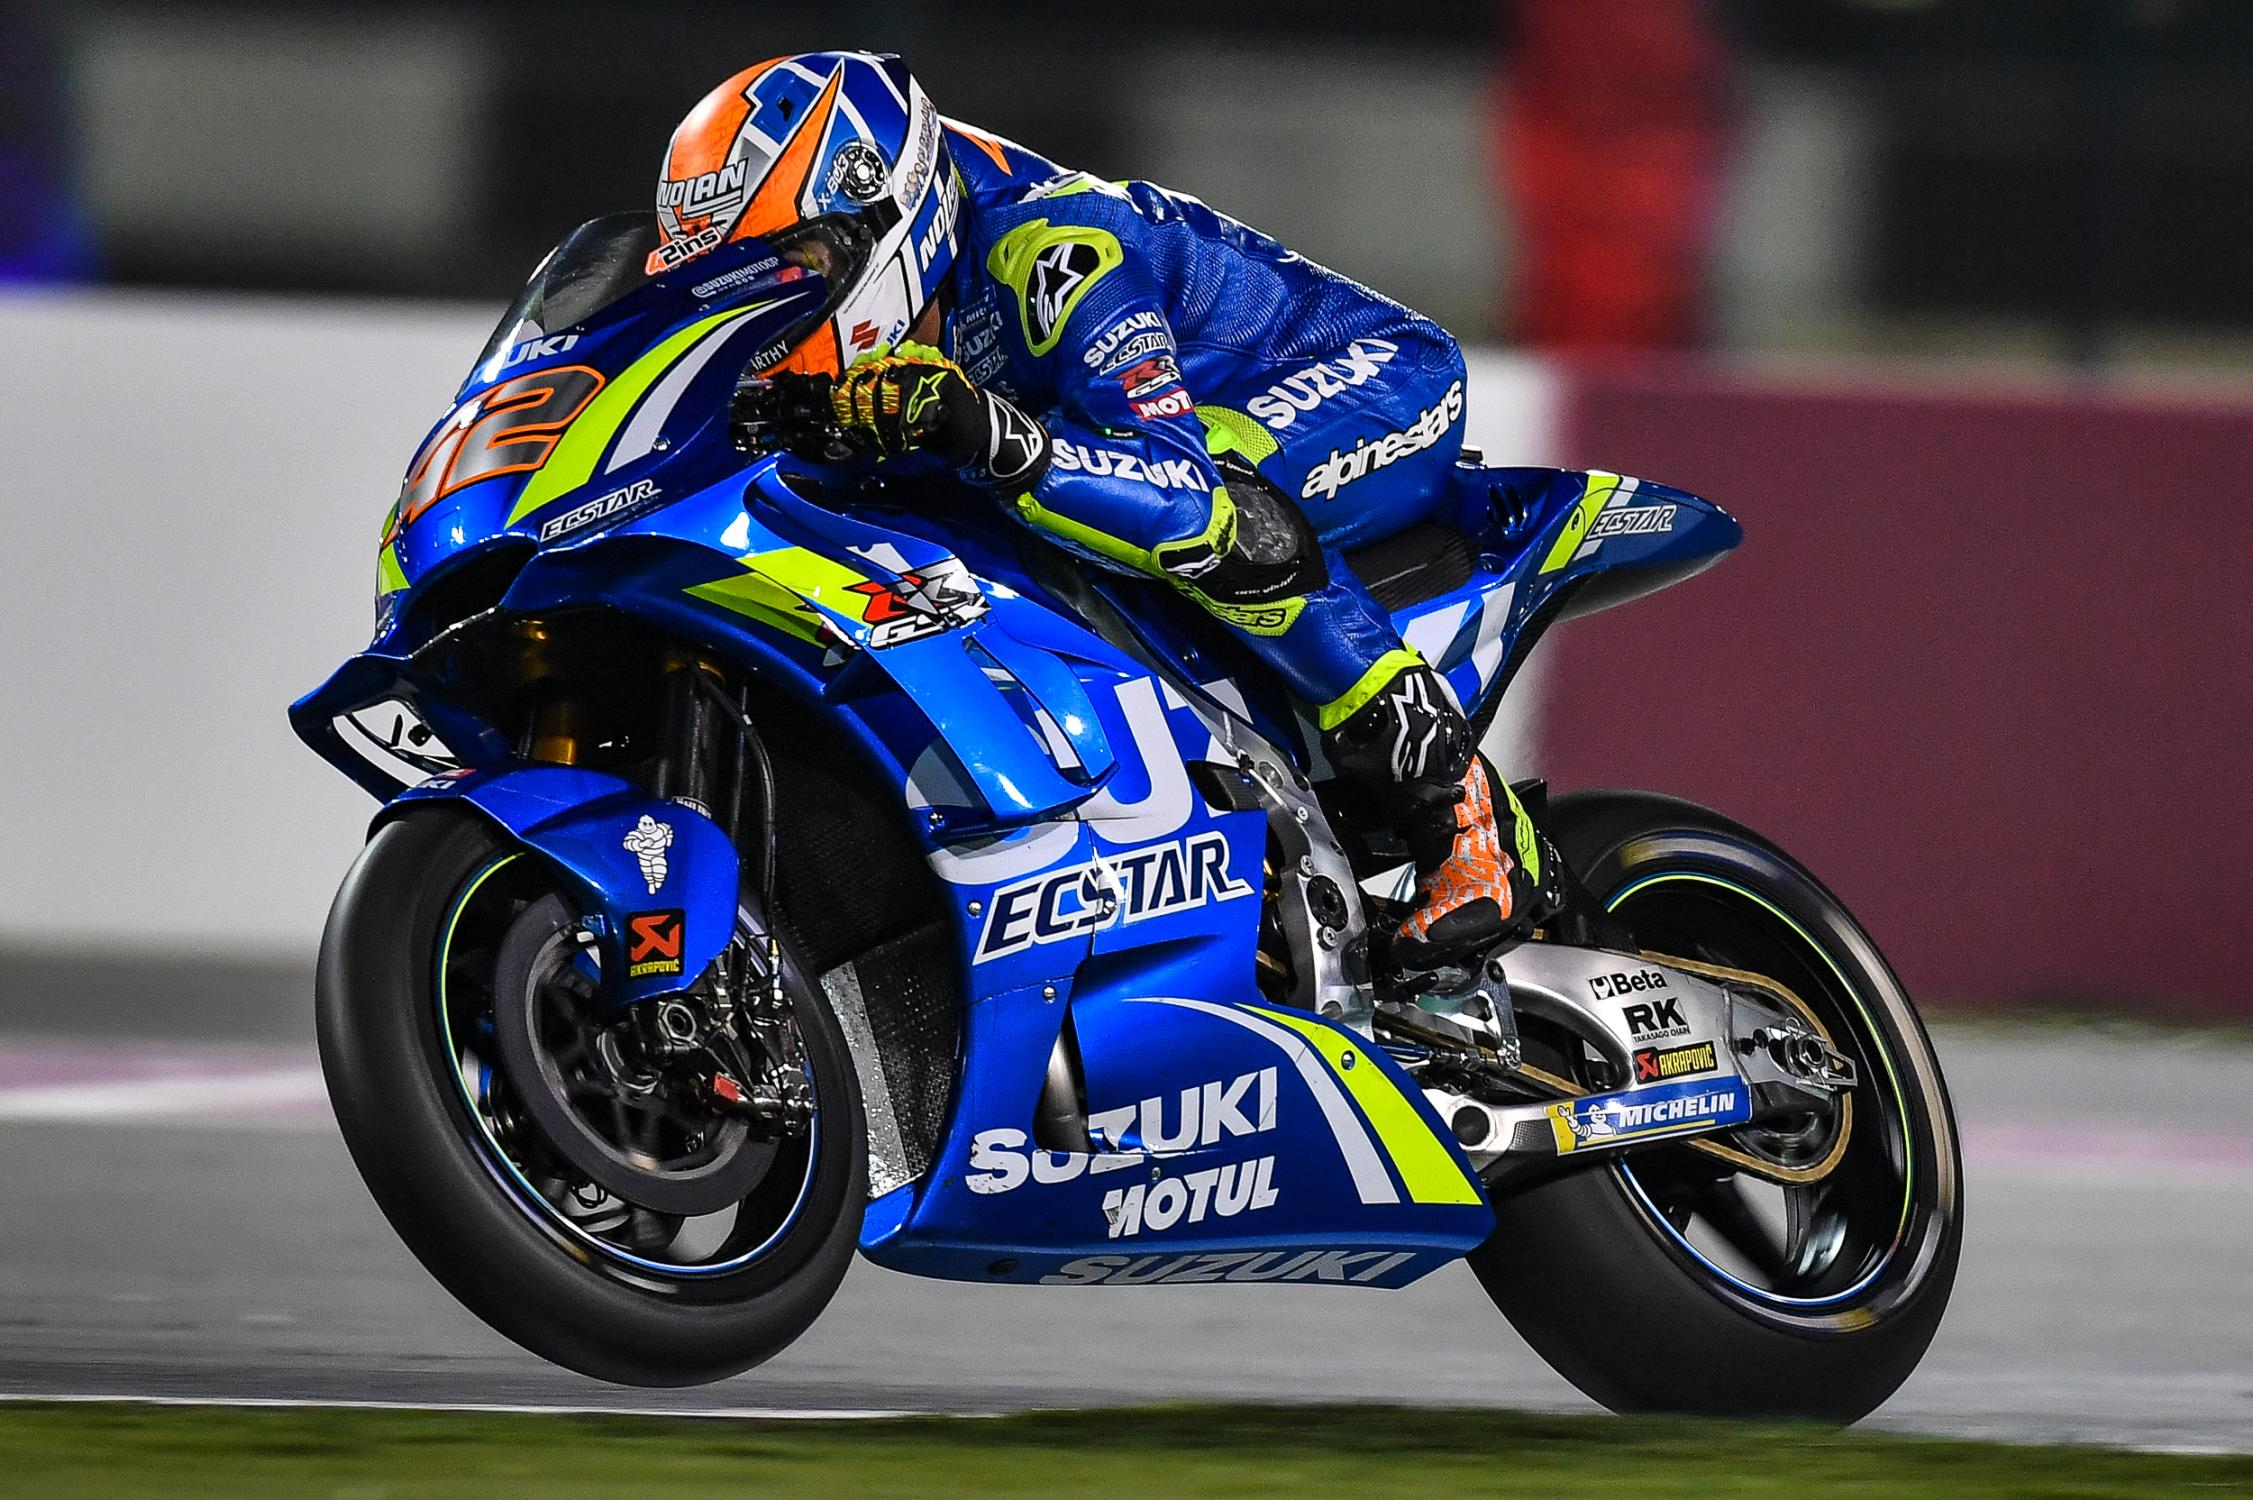 [Test] Losail 2018 42-alex-rins-esplg5_4606.gallery_full_top_fullscreen